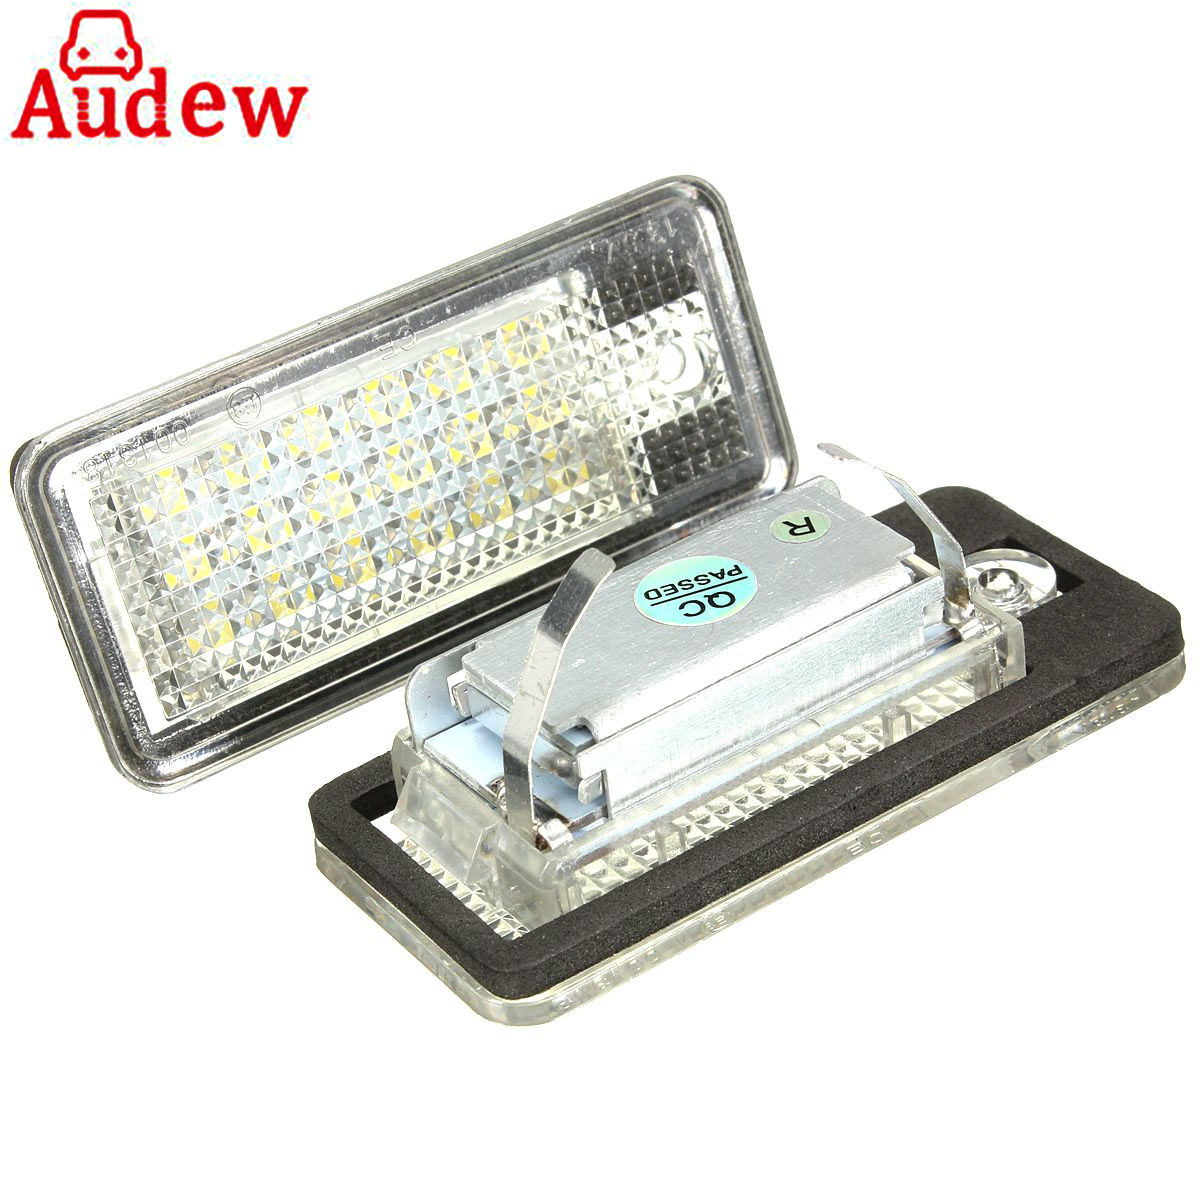 2Pcs Car Error Free 18 LED License Number Plate Light White Lamp For Audi A3 S3 A4 S4 B6 B7 A6 S6 A8 Q7 2pcs car error free 18 led license number plate light white lamp for audi a3 s3 a4 s4 b6 b7 a6 s6 a8 q7